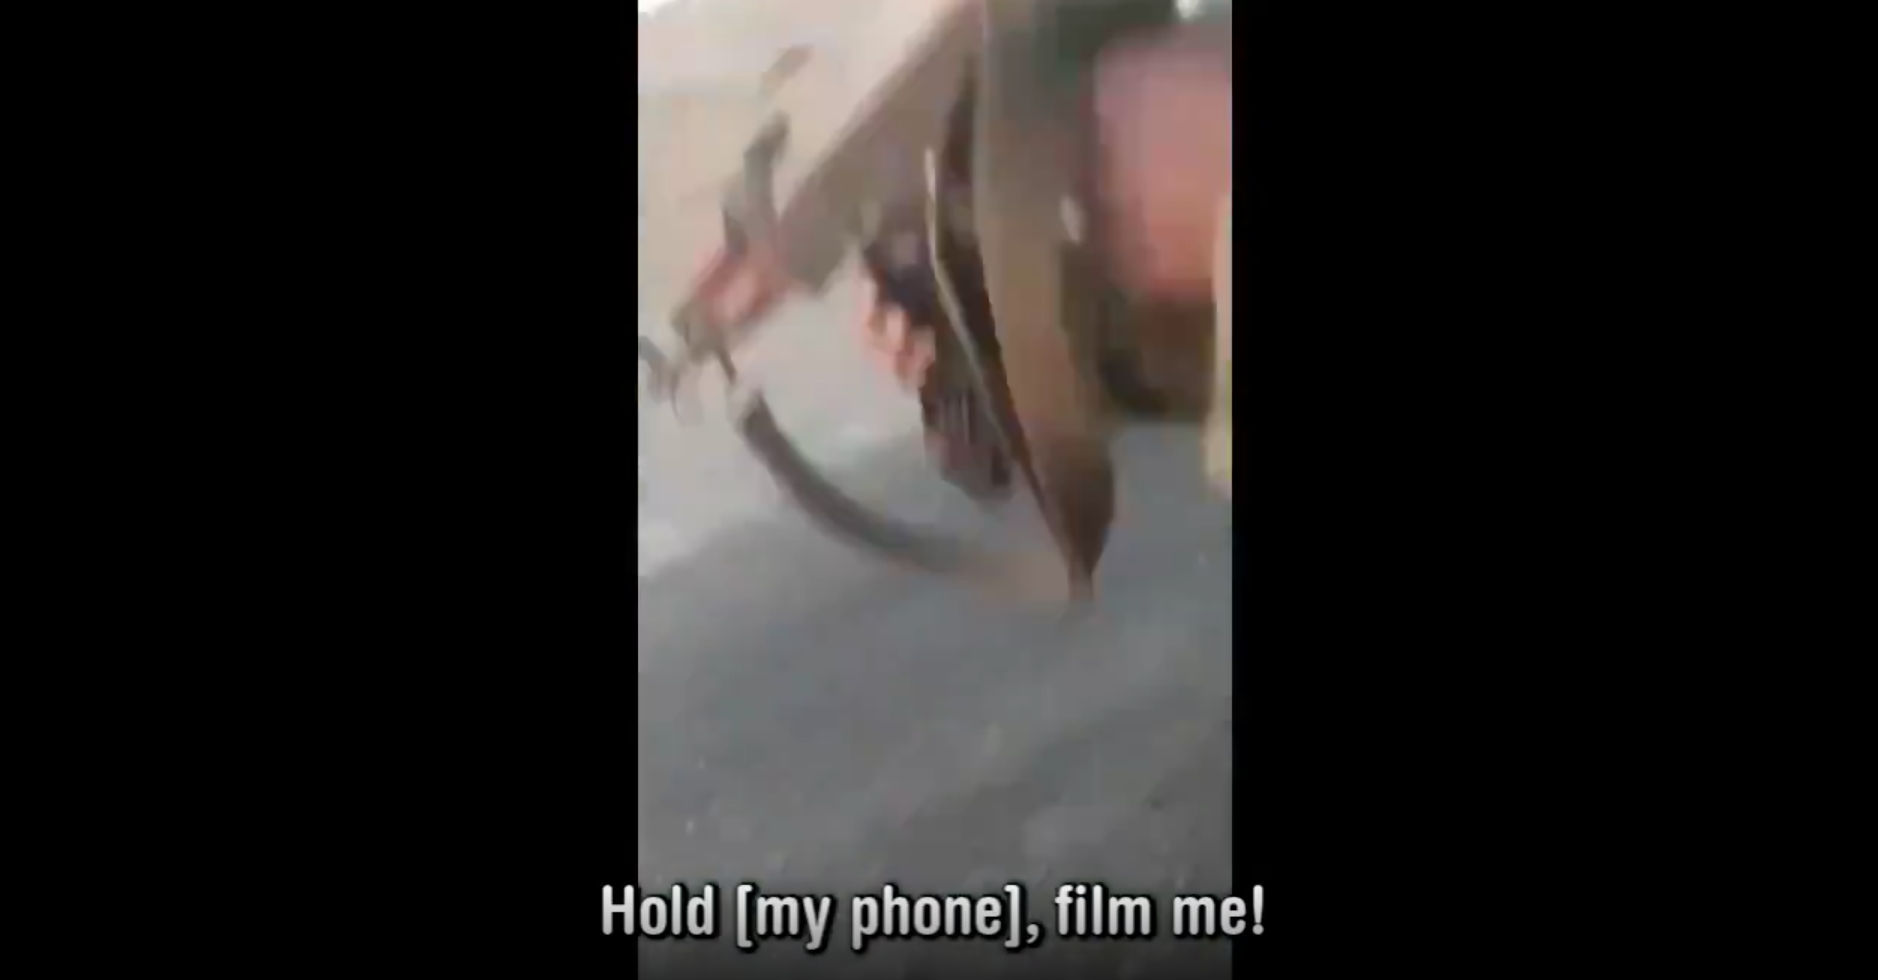 Turkey-Backed Rebels Who Filmed Gruesome Executions on Their Phones Accused of 'Blatant War Crimes'